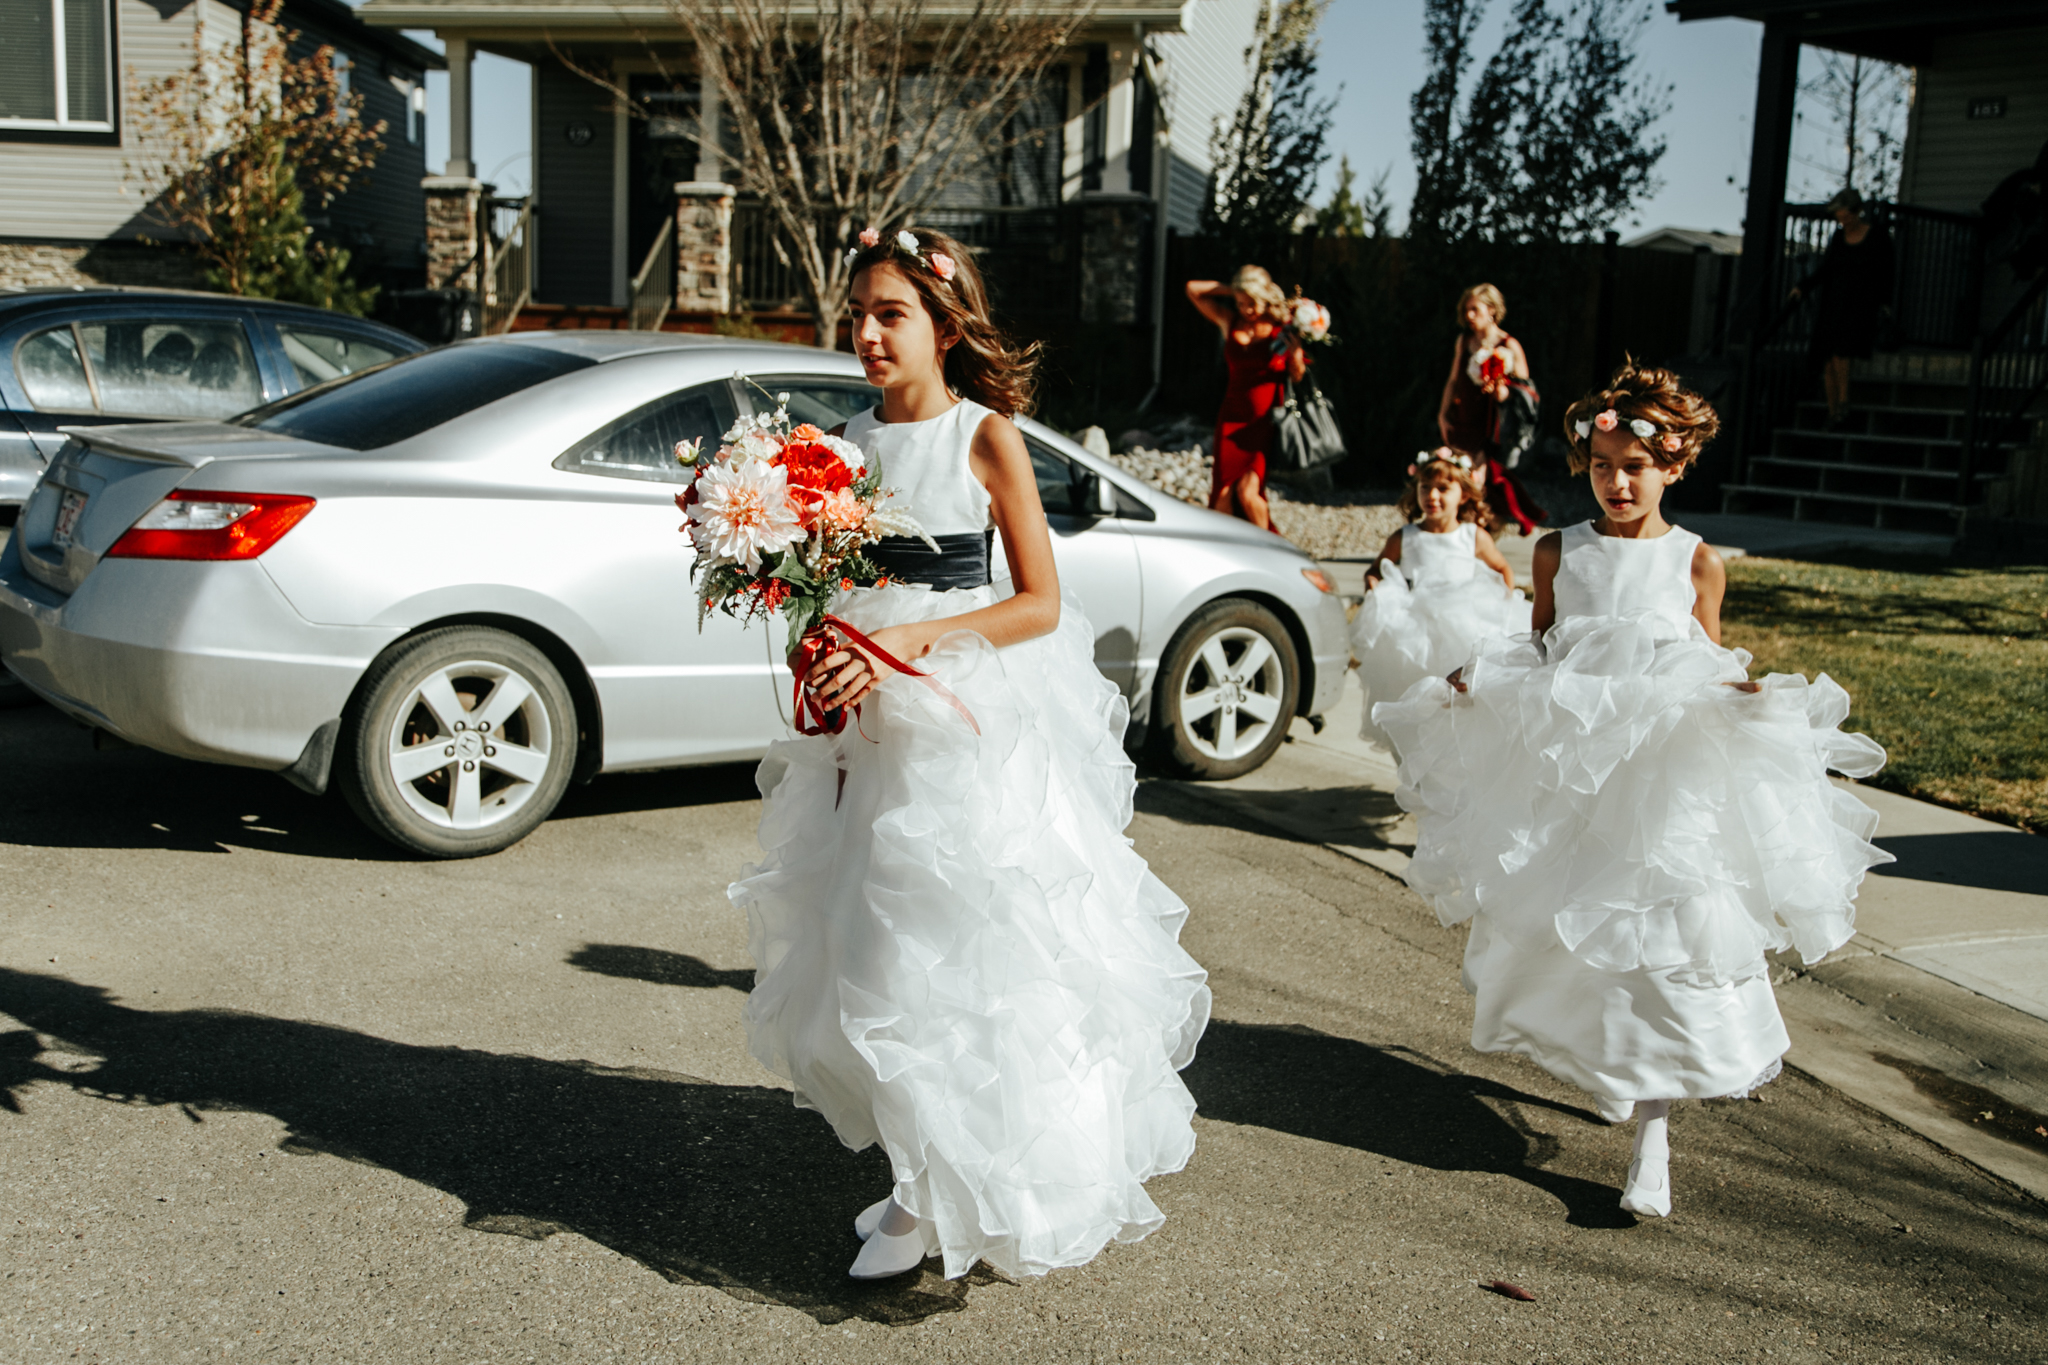 lethbridge-wedding-photographer-love-and-be-loved-photography-bride-prep-photo-image-picture-16.jpg